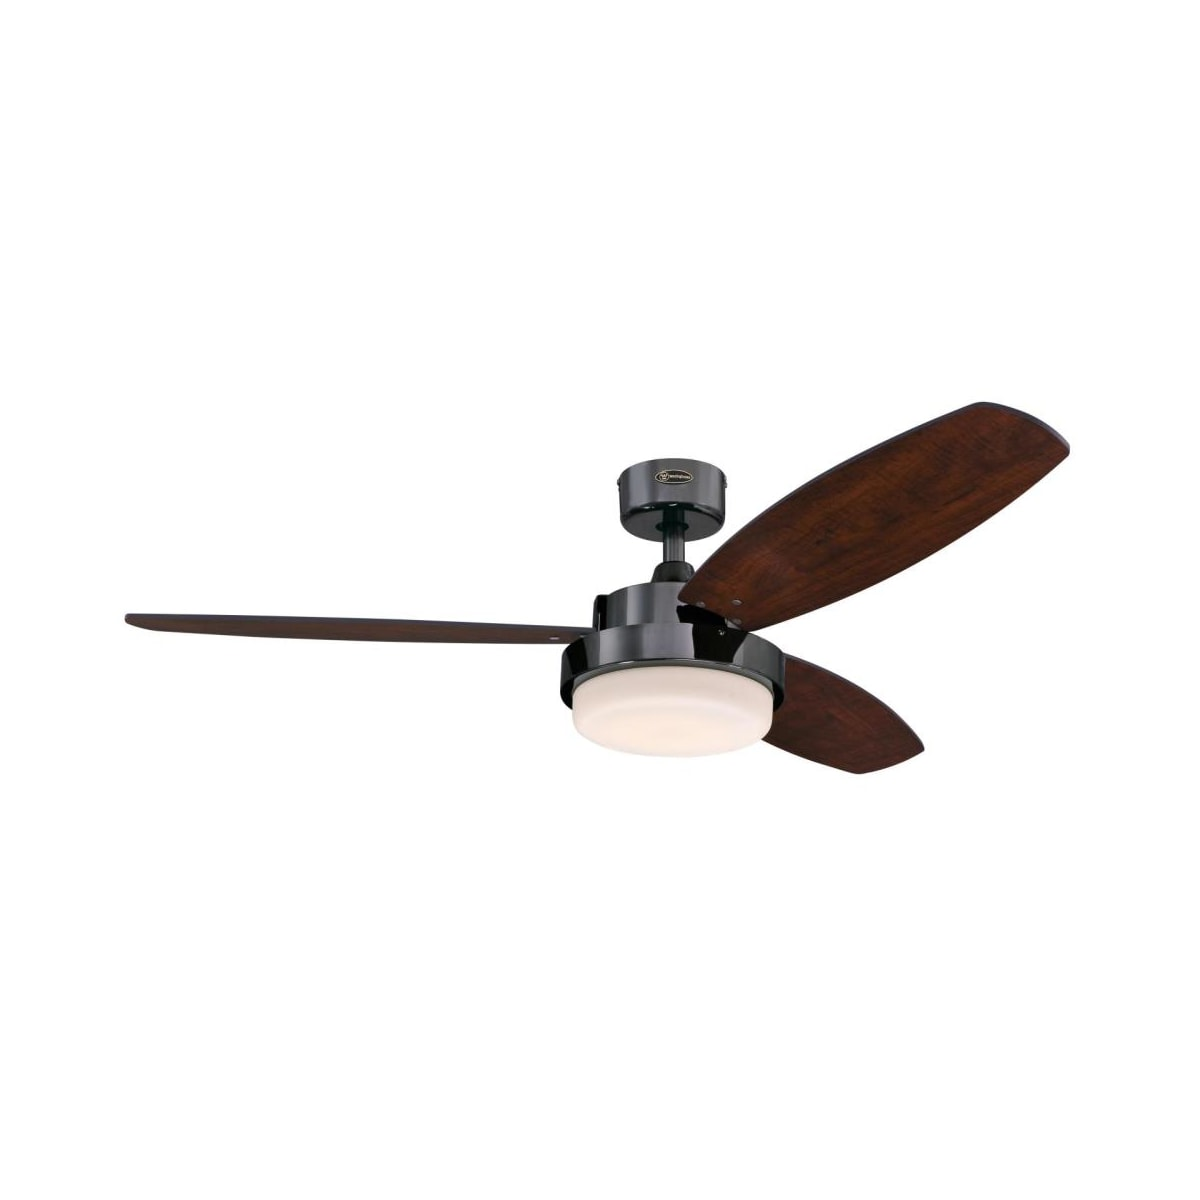 Westinghouse 7220300 Gun Metal Alloy Led 52 3 Blade Indoor Ceiling Fan Remote Control And Led Light Kit Included Lightingdirect Com